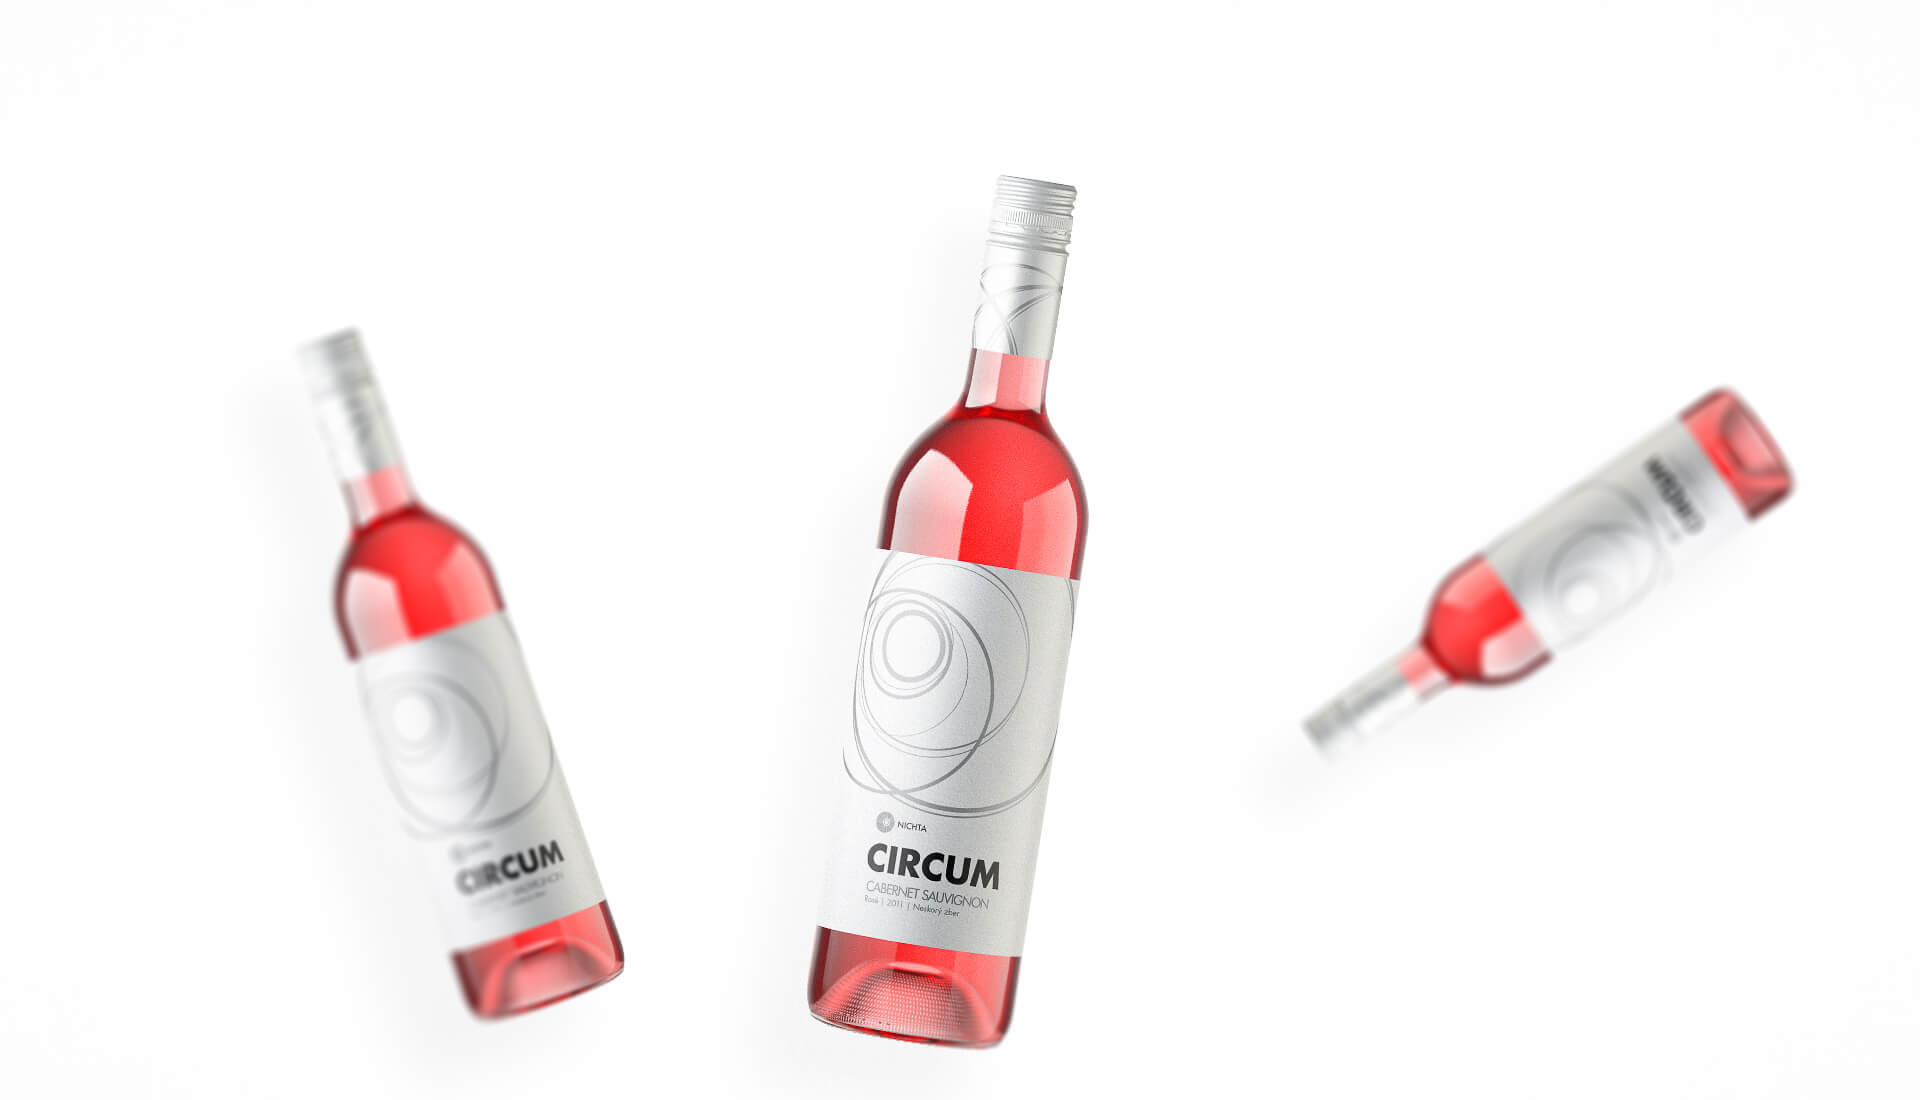 Wine label packaging design CIRCUM NICHTA winery rose wines